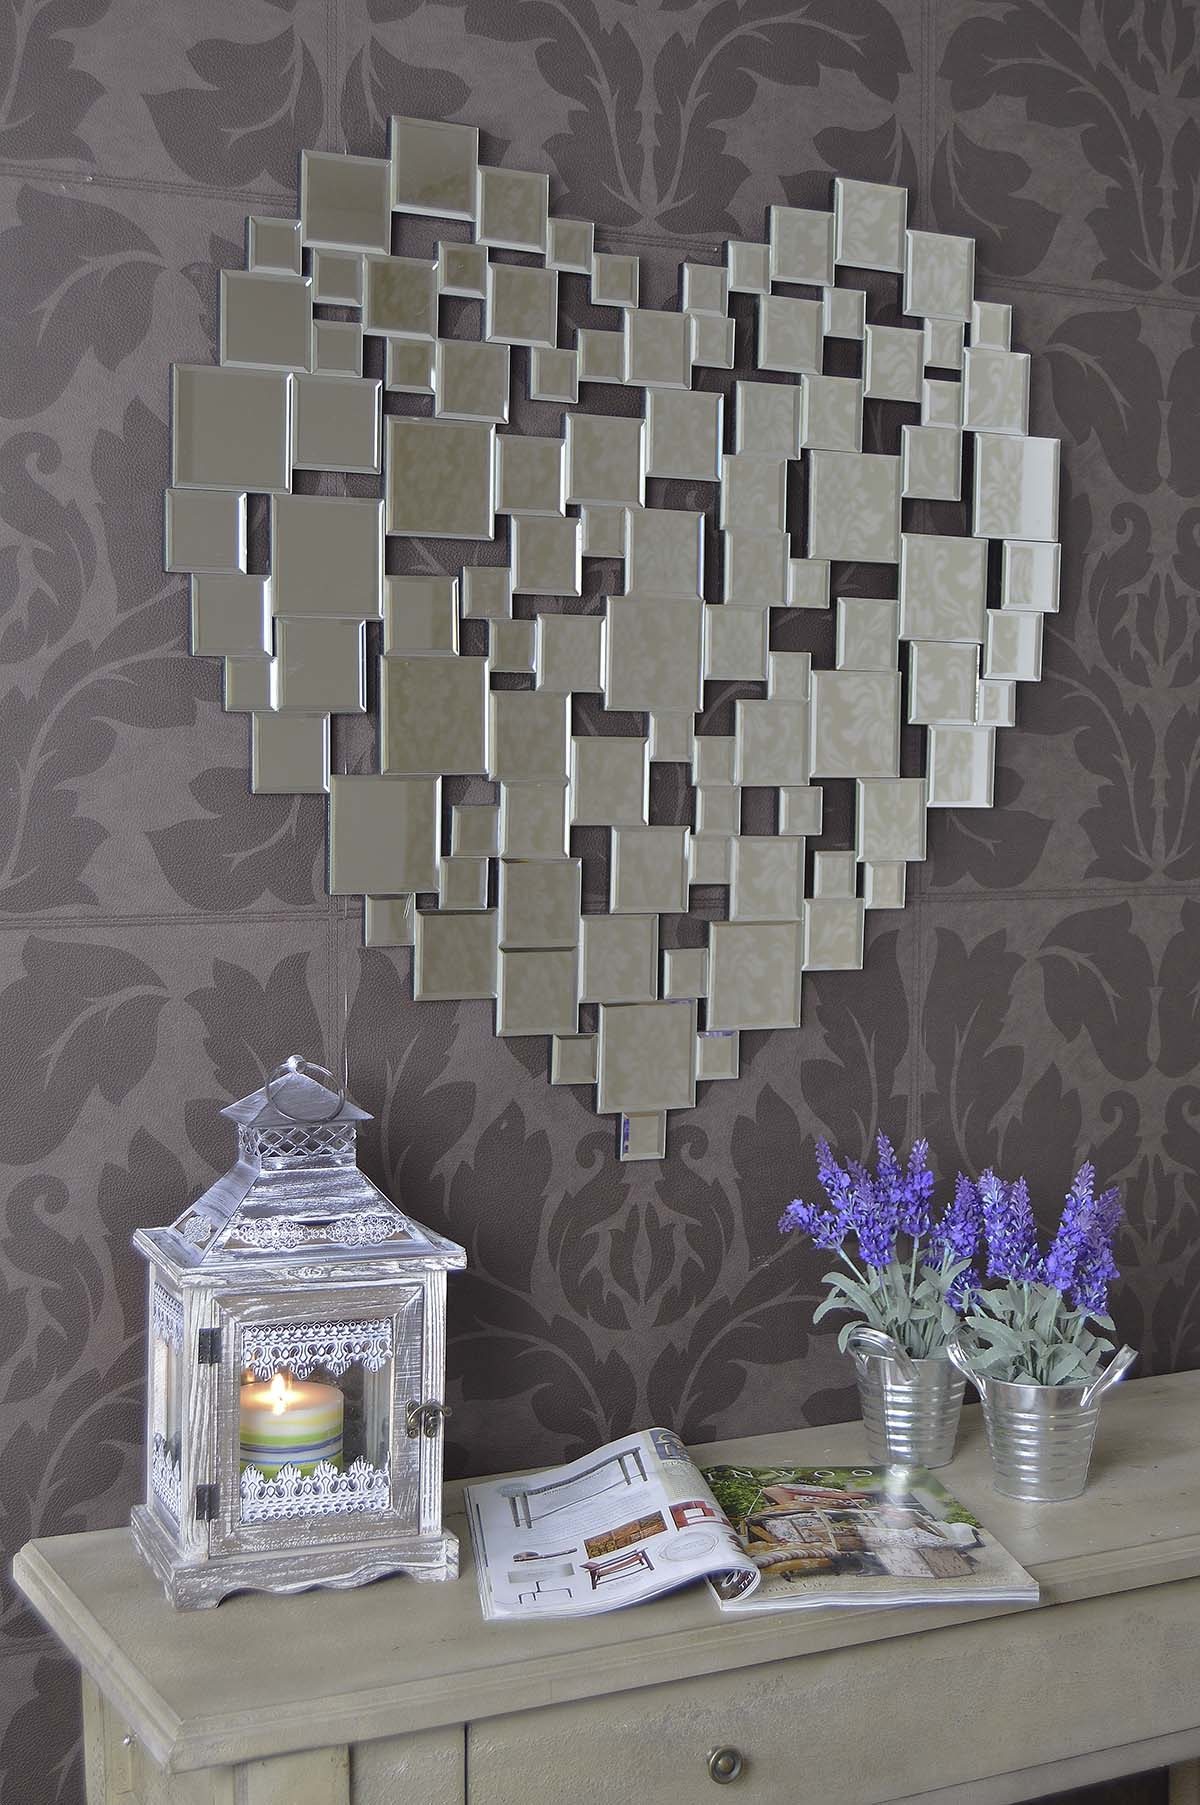 15 Heart Wall Mirror Mirror Ideas